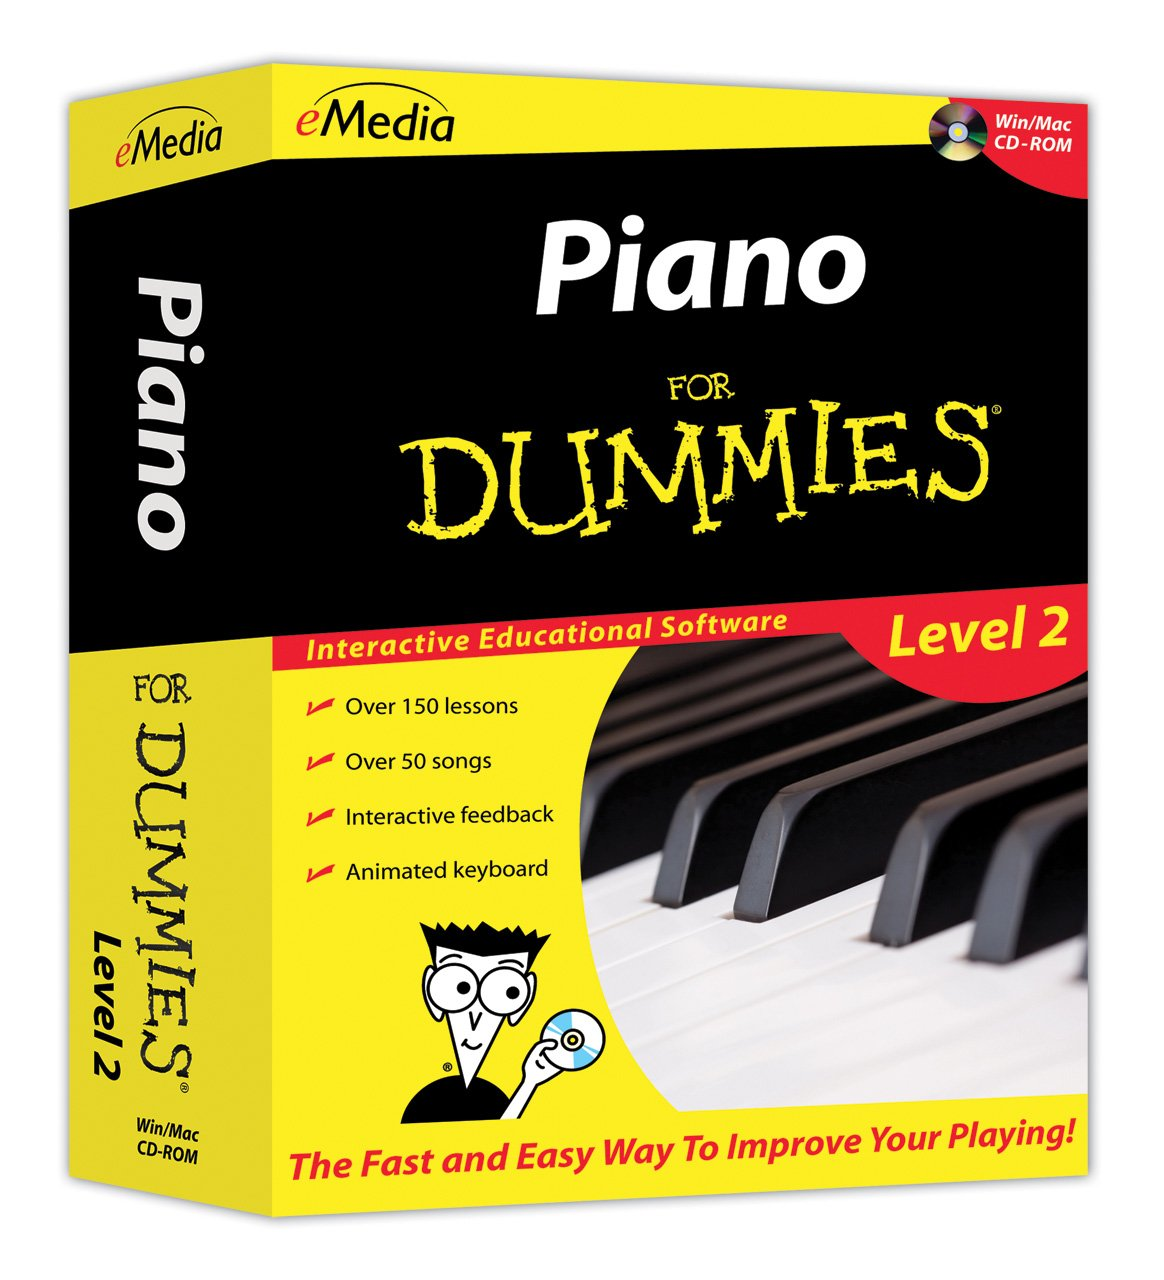 eMedia Piano For Dummies Level 2